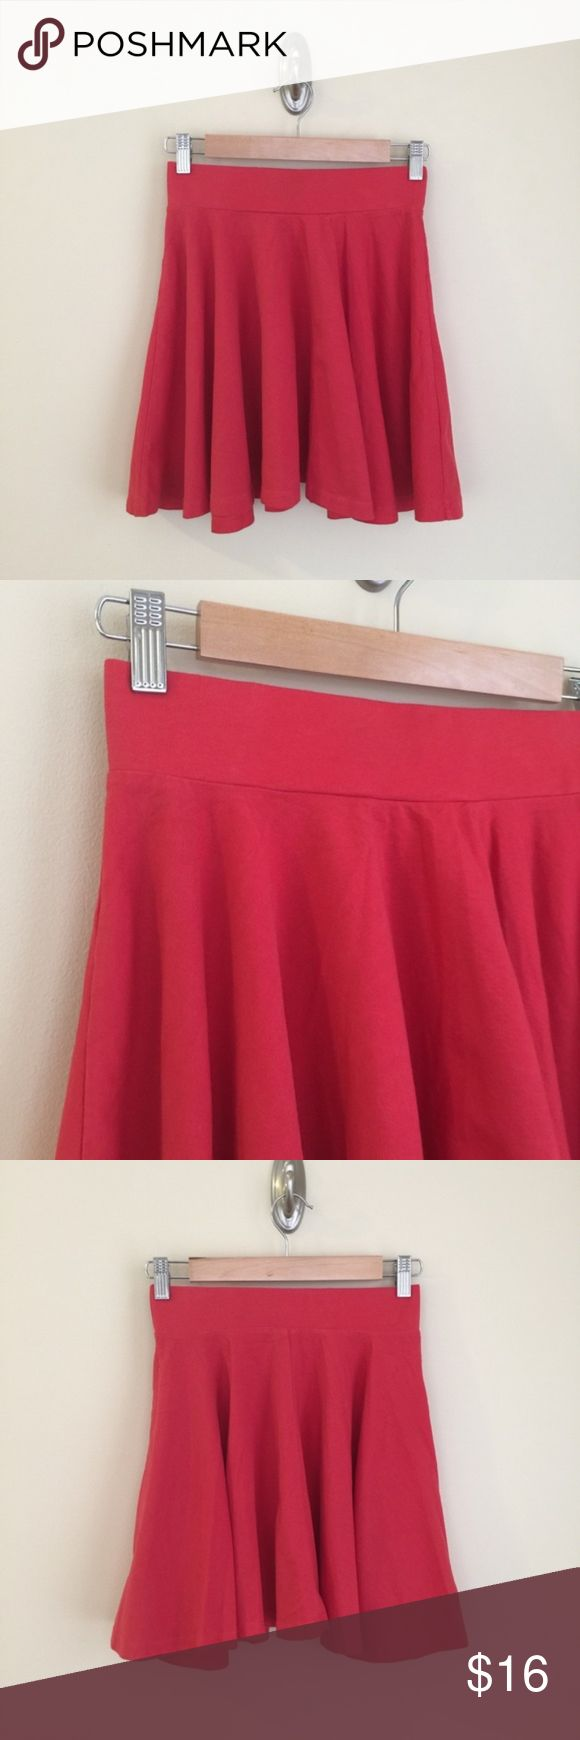 """Pins & Needles (UO) soft red skater skirt XS Super-soft stretchy material, wide elastic waistband, short length.  Size:  XS     Condition:  very good pre-owned, minor fading from normal wear.  Material:  95% cotton/5% spandex.    Measurements (approximate, taken laying flat):  length 17"""", flat waistband 12.5"""".  Bundle your likes for a custom private offer! Urban Outfitters Skirts Mini"""